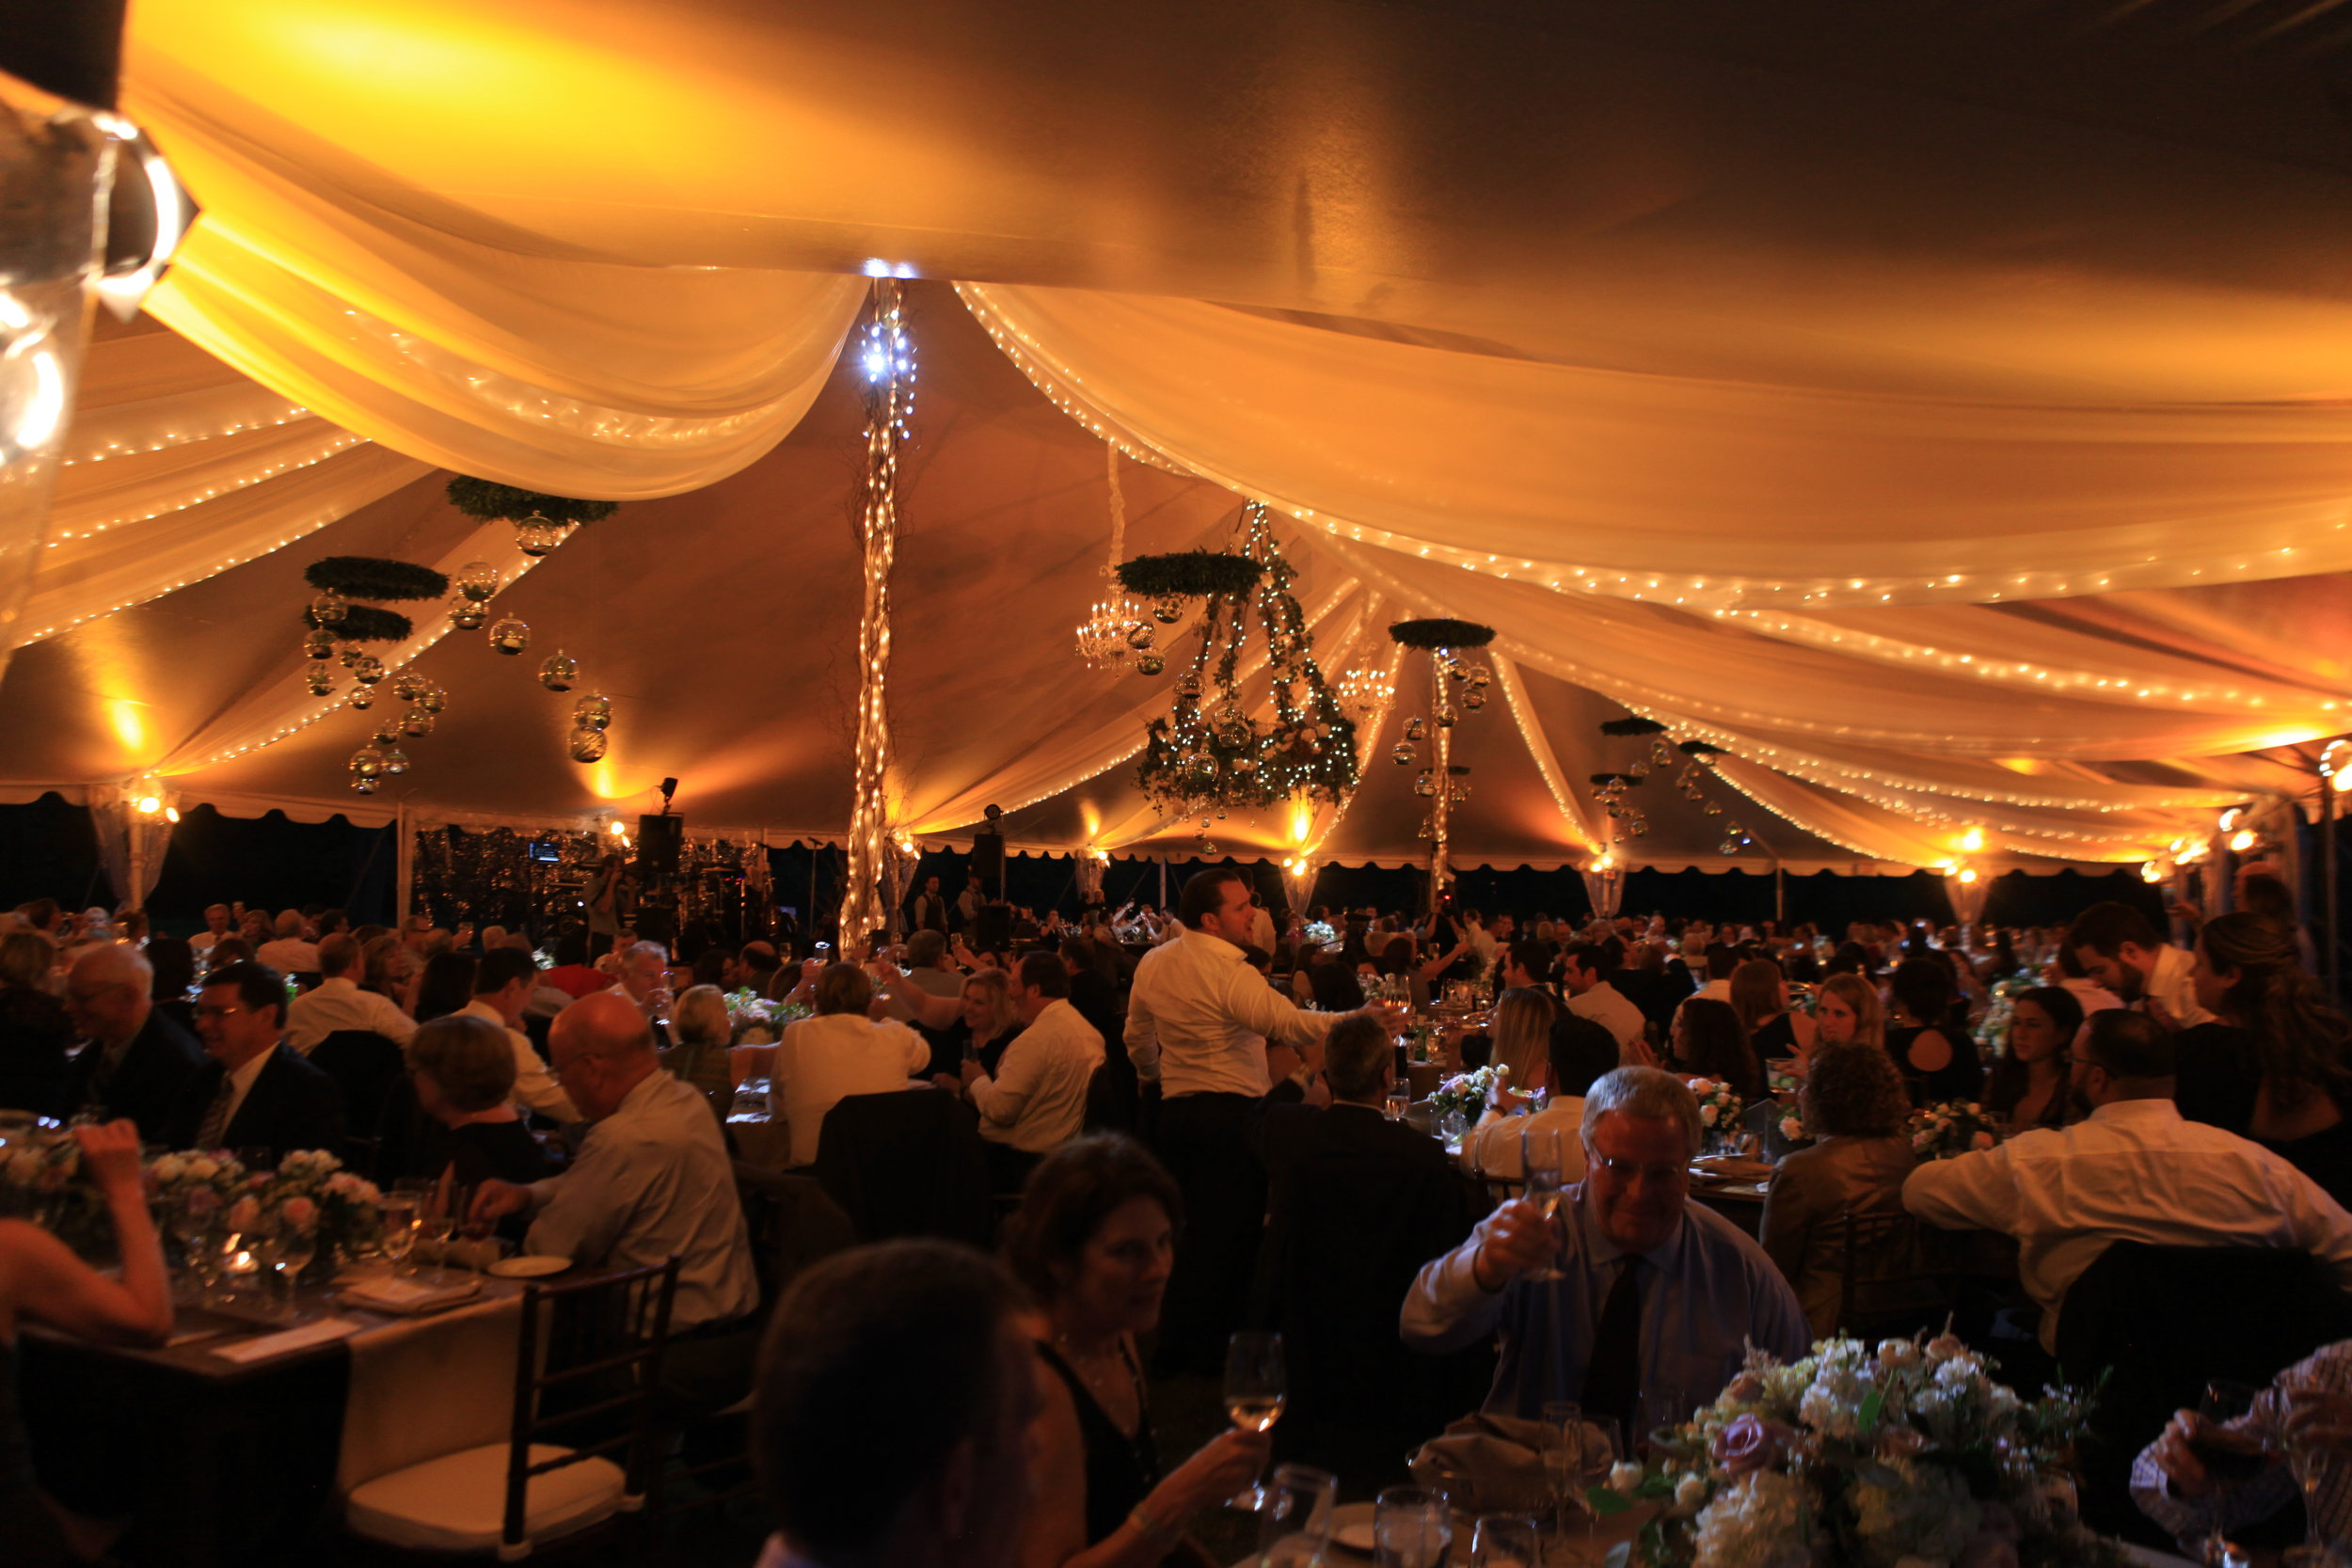 Copy of Tent Decor